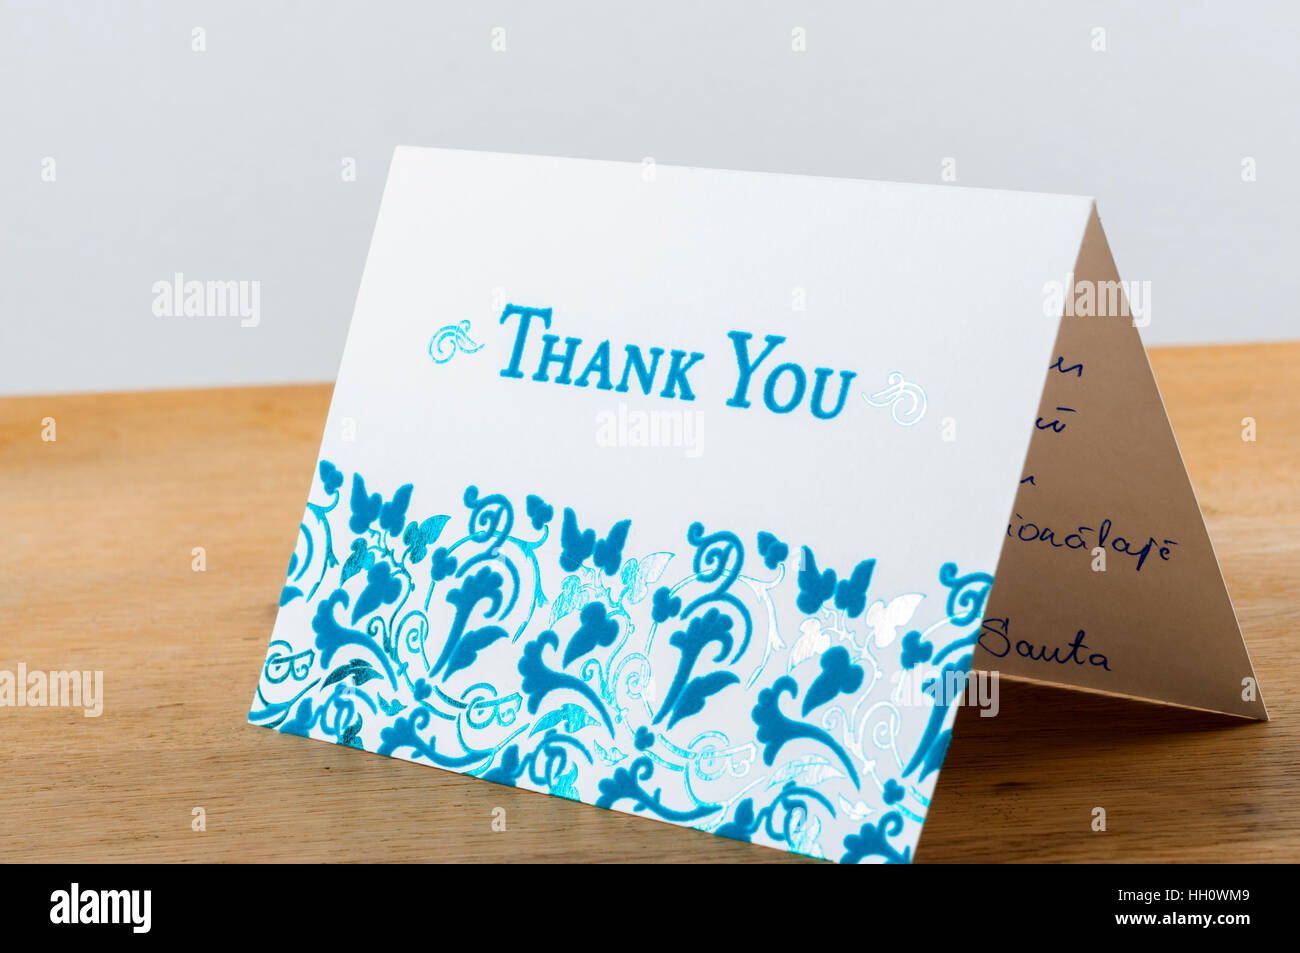 White thank you card with blue letters with note written by hand - Stock Image